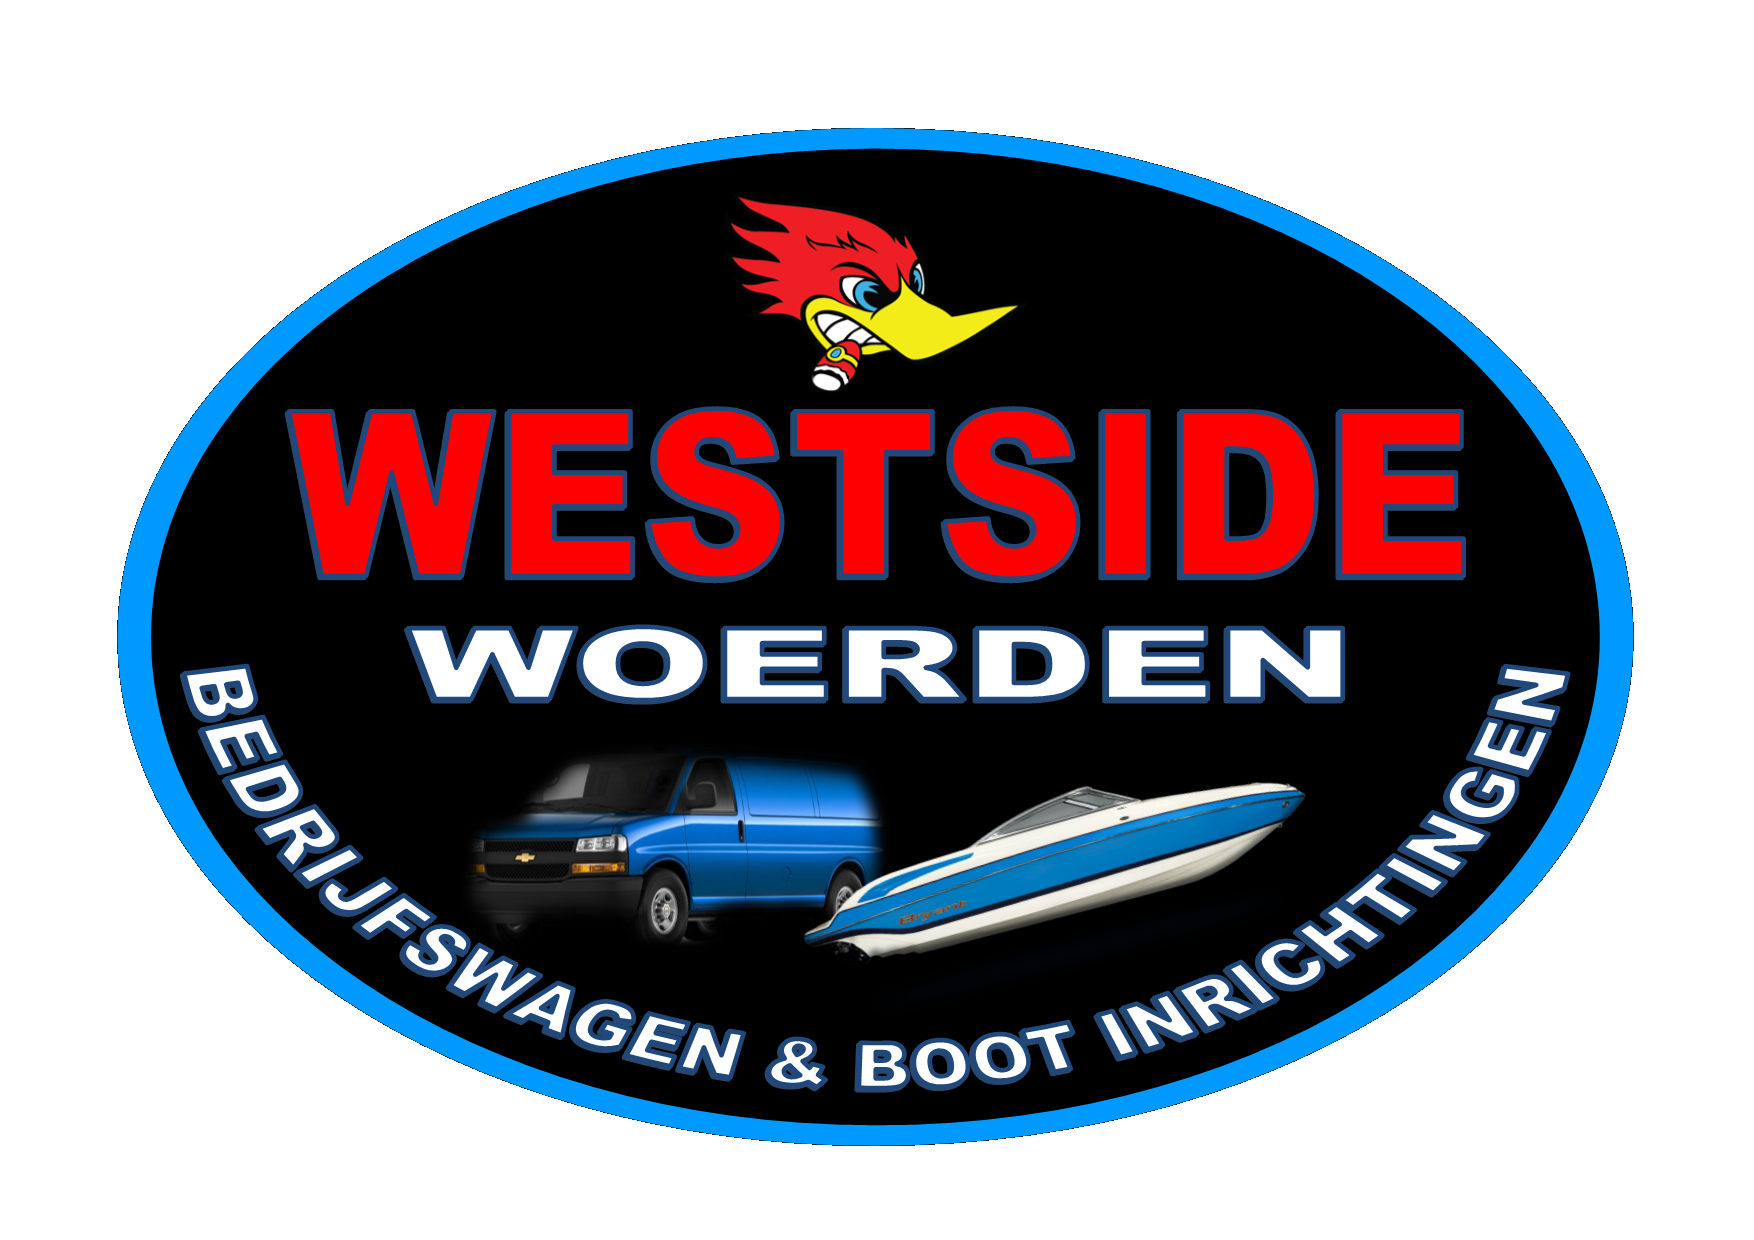 Outboardspecialist.nl